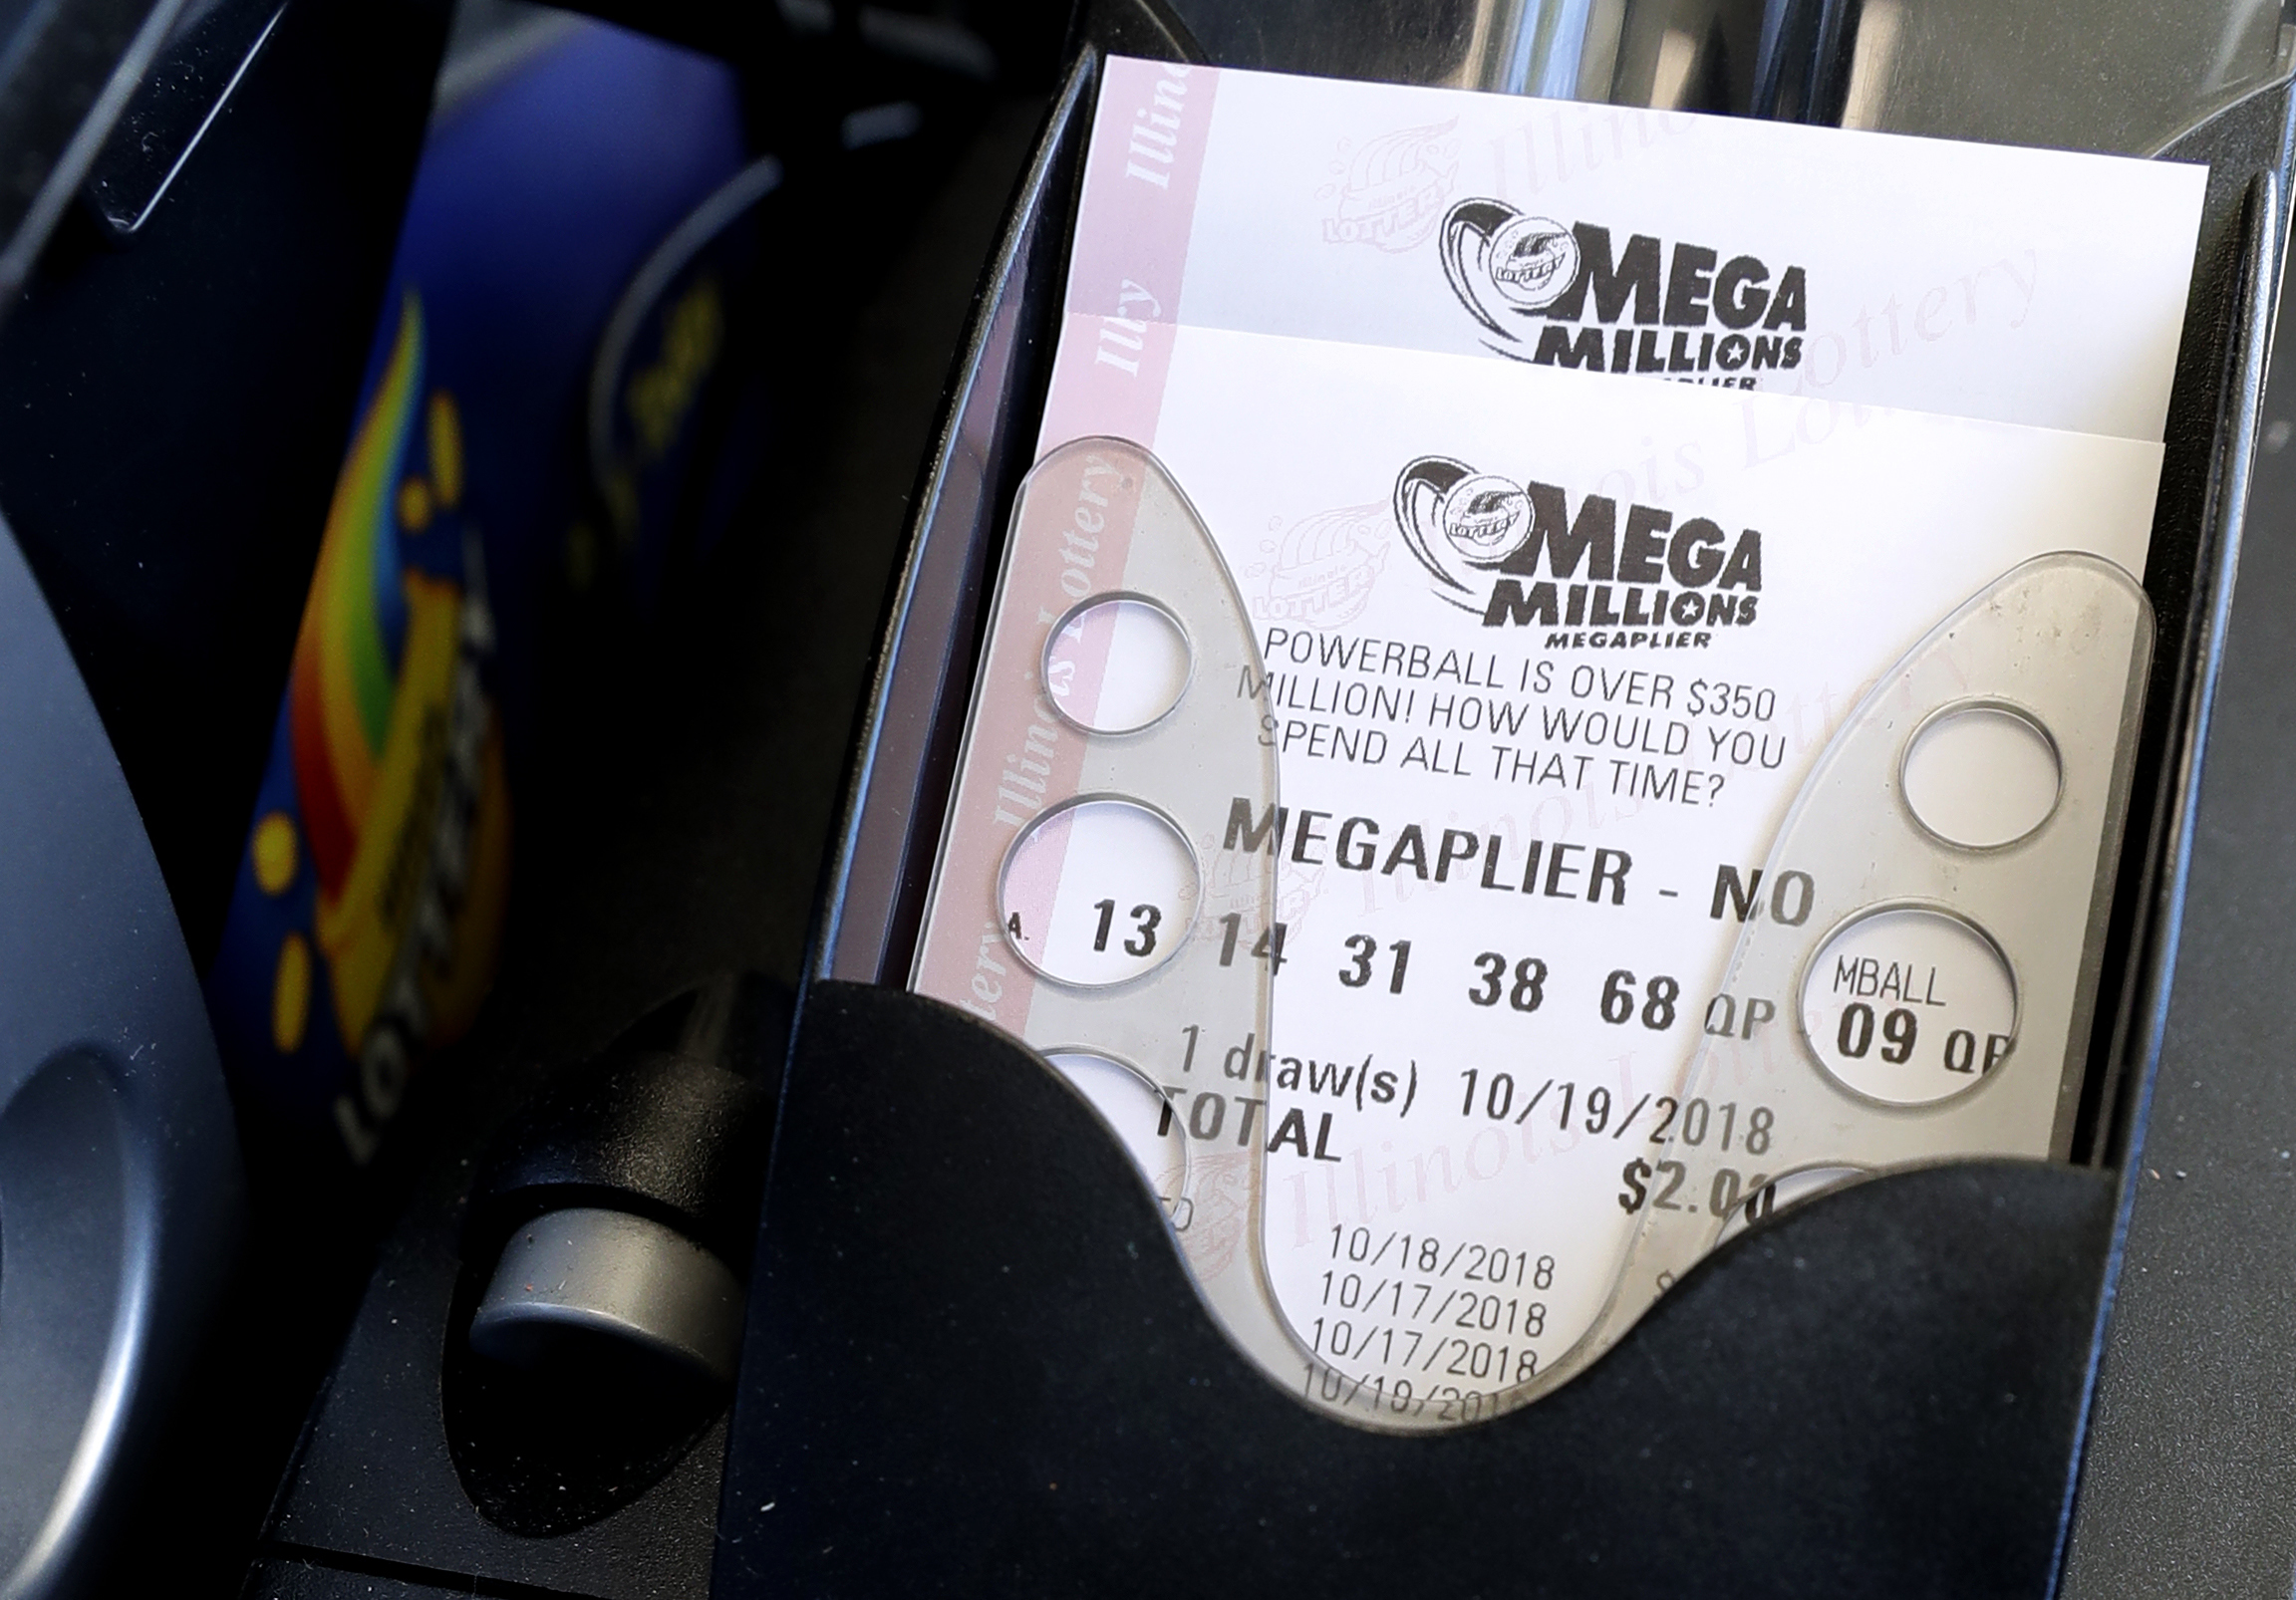 970m Mega Millions Jackpot Odds Deadline What You Need To Know Silive Com